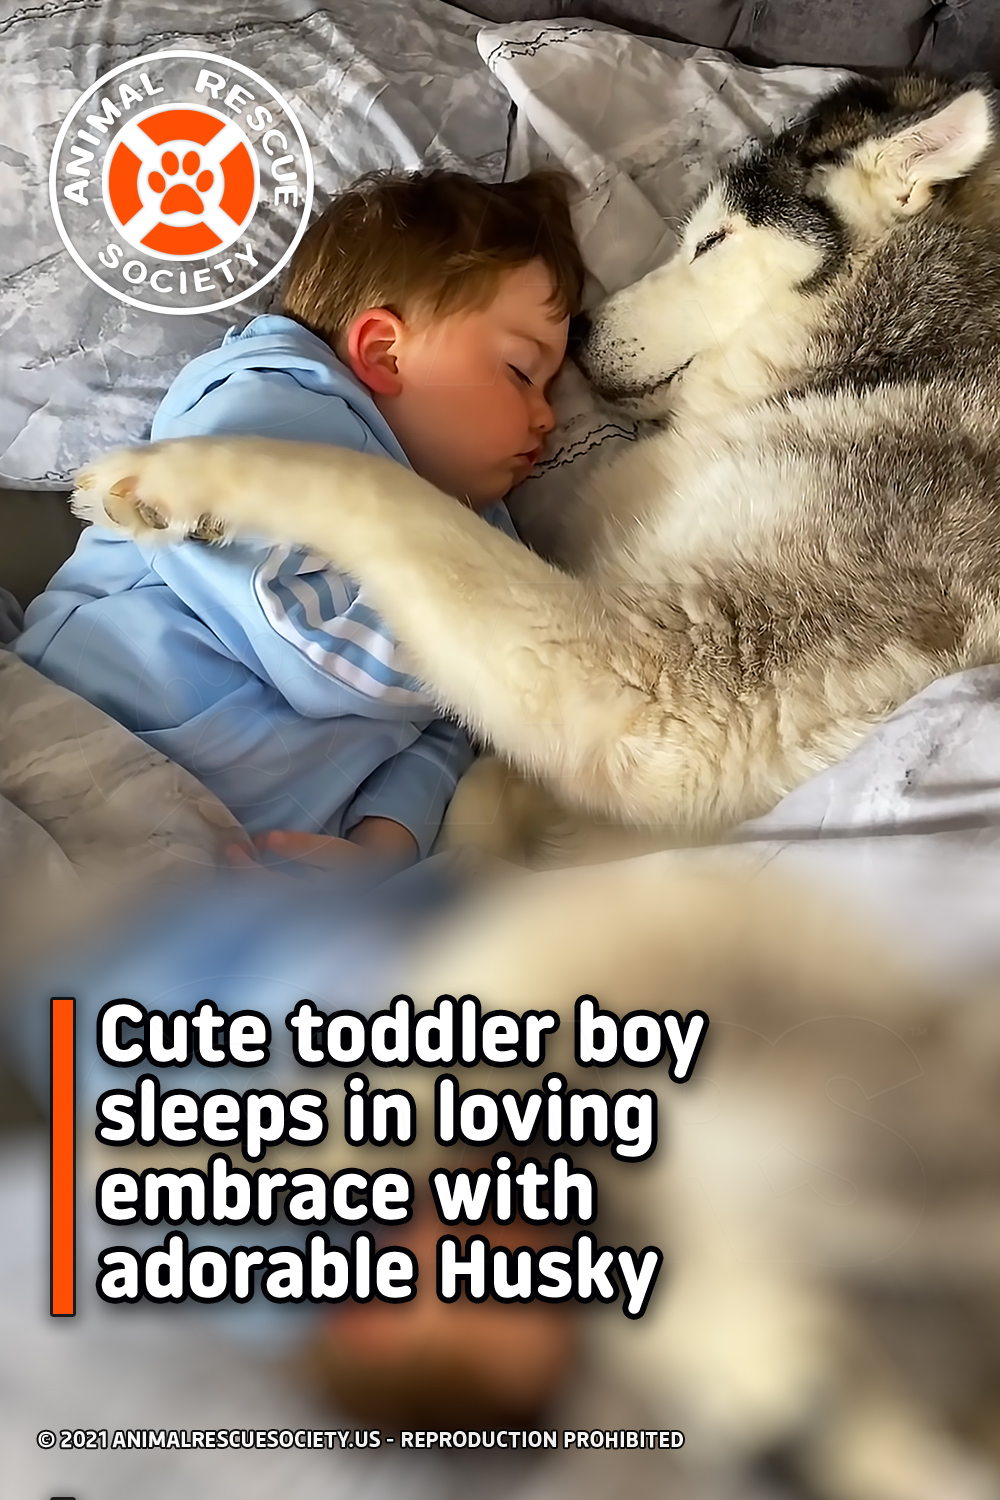 Cute toddler boy sleeps in loving embrace with adorable Husky